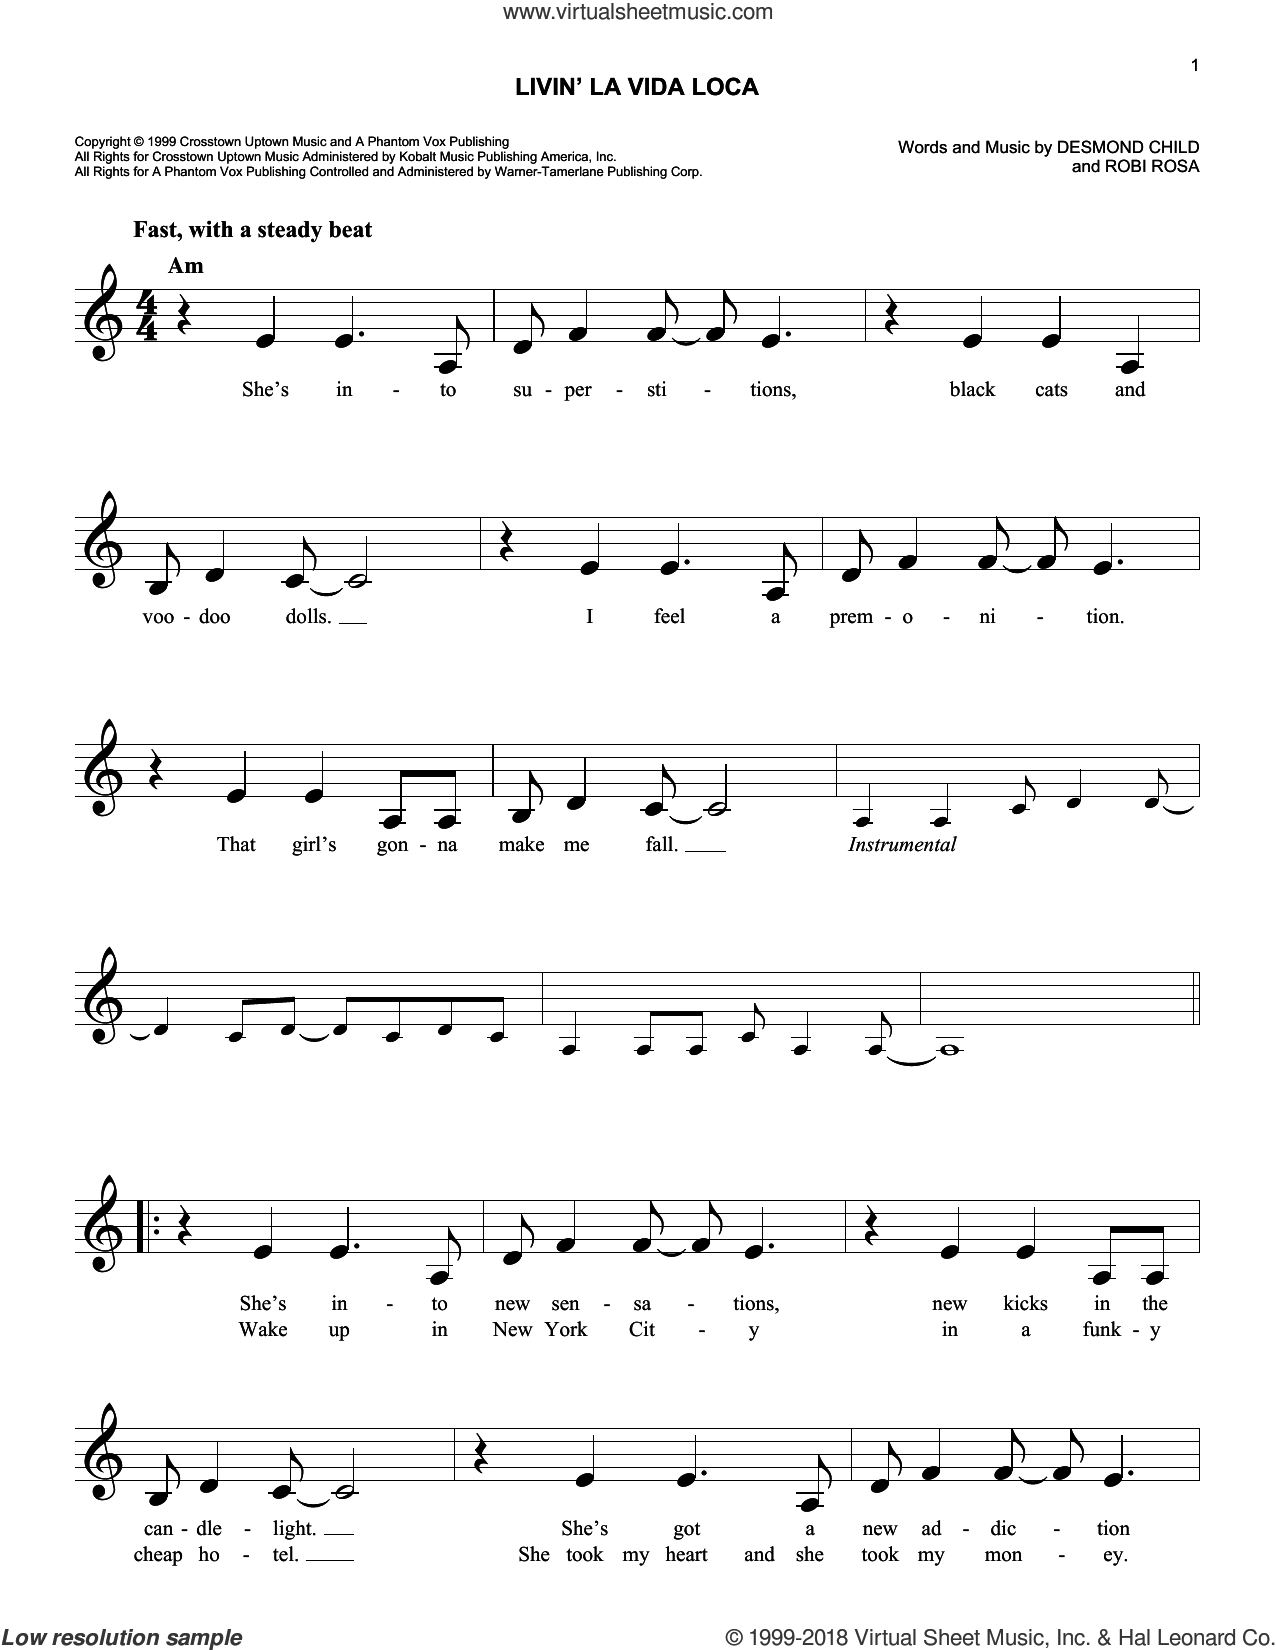 Livin' La Vida Loca sheet music for voice and other instruments (fake book) by Ricky Martin, Desmond Child and Robi Rosa, intermediate skill level